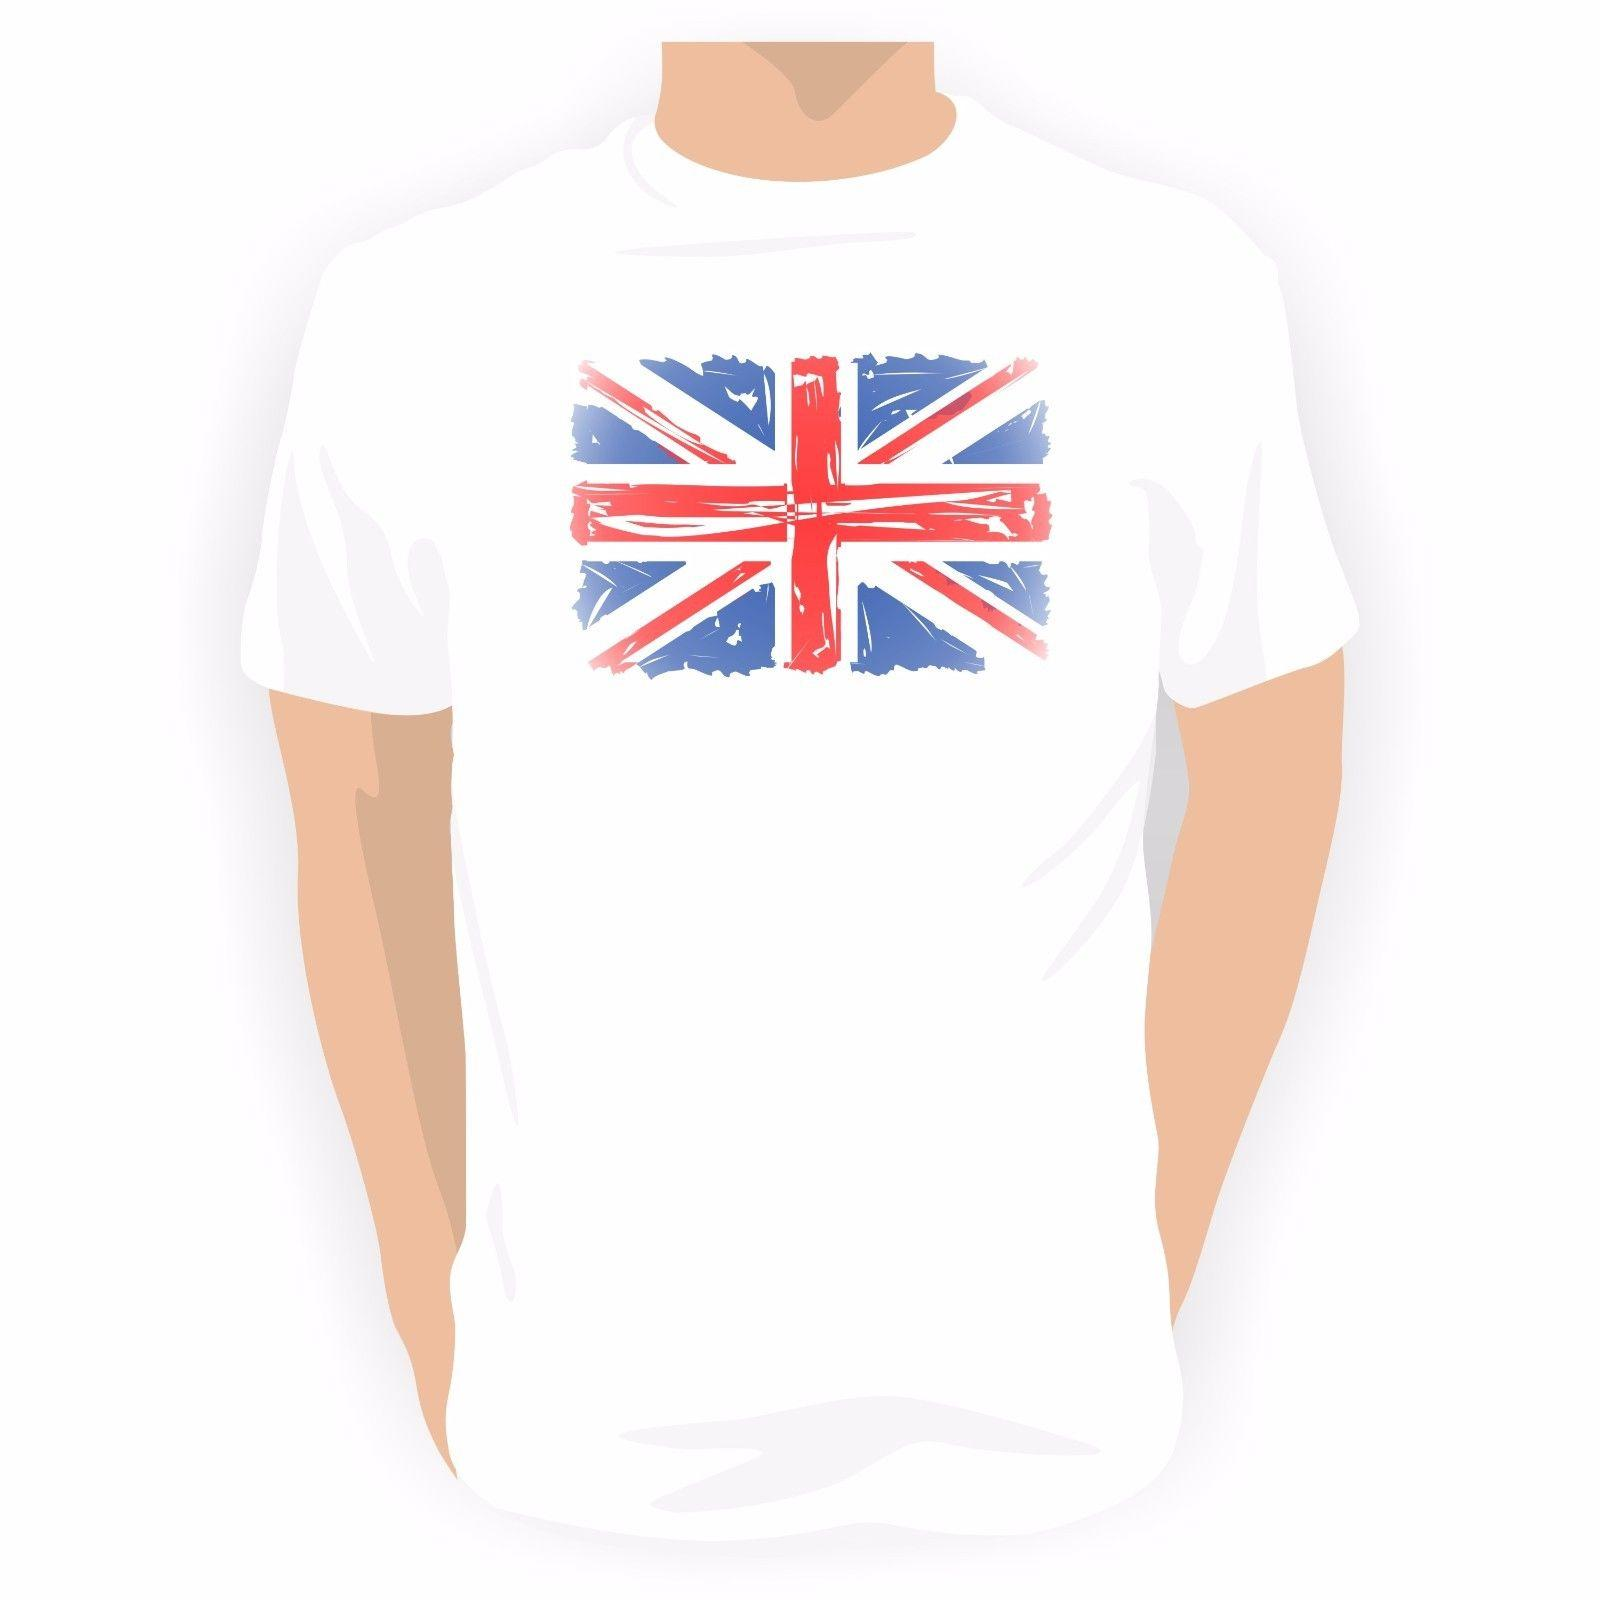 Union Jack Mens T Shirt British Supporters Flag great for events Funny free shipping Unisex Casual tshirt gift